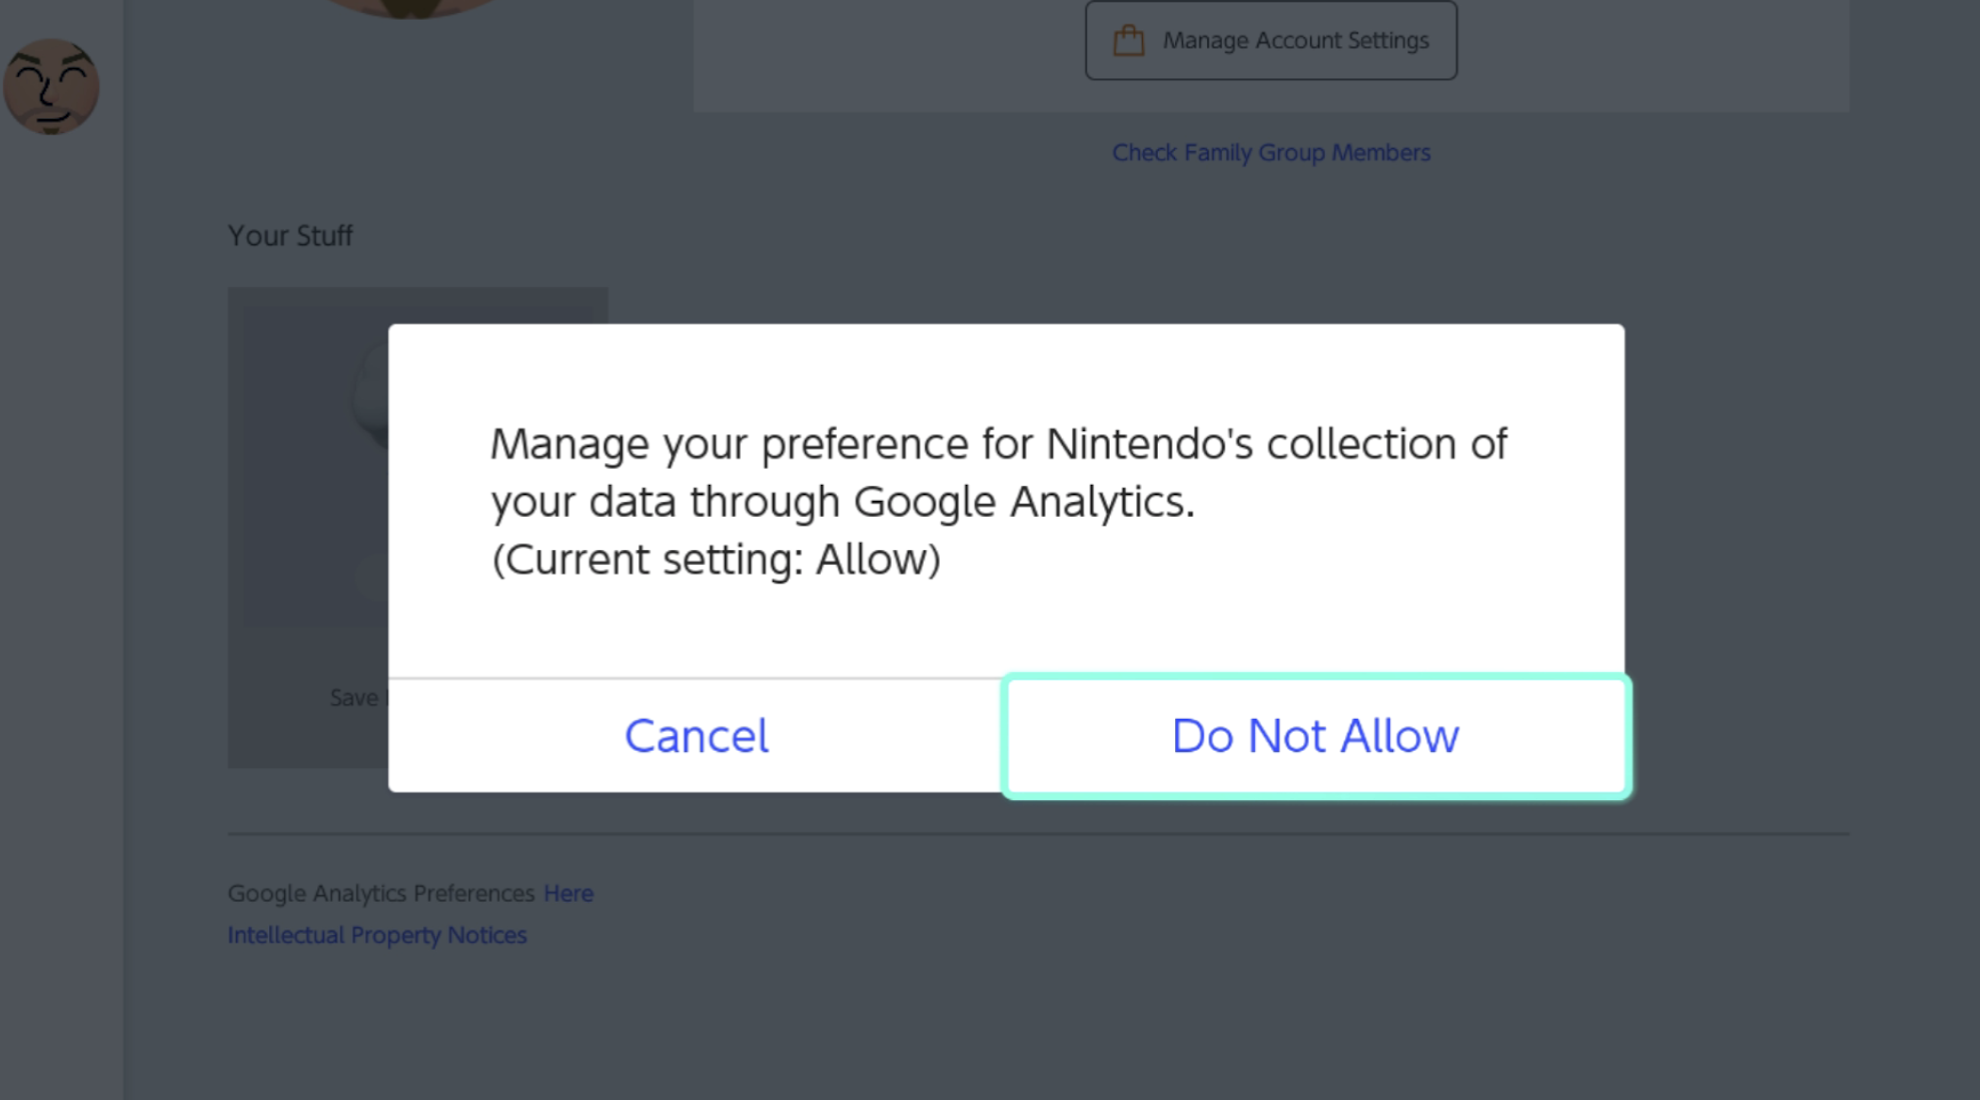 The confirmation box with the message Manage your preference for Nintendo's collection of your data through Google Analytics. will prompt. Tap on the Do Not Allow button.